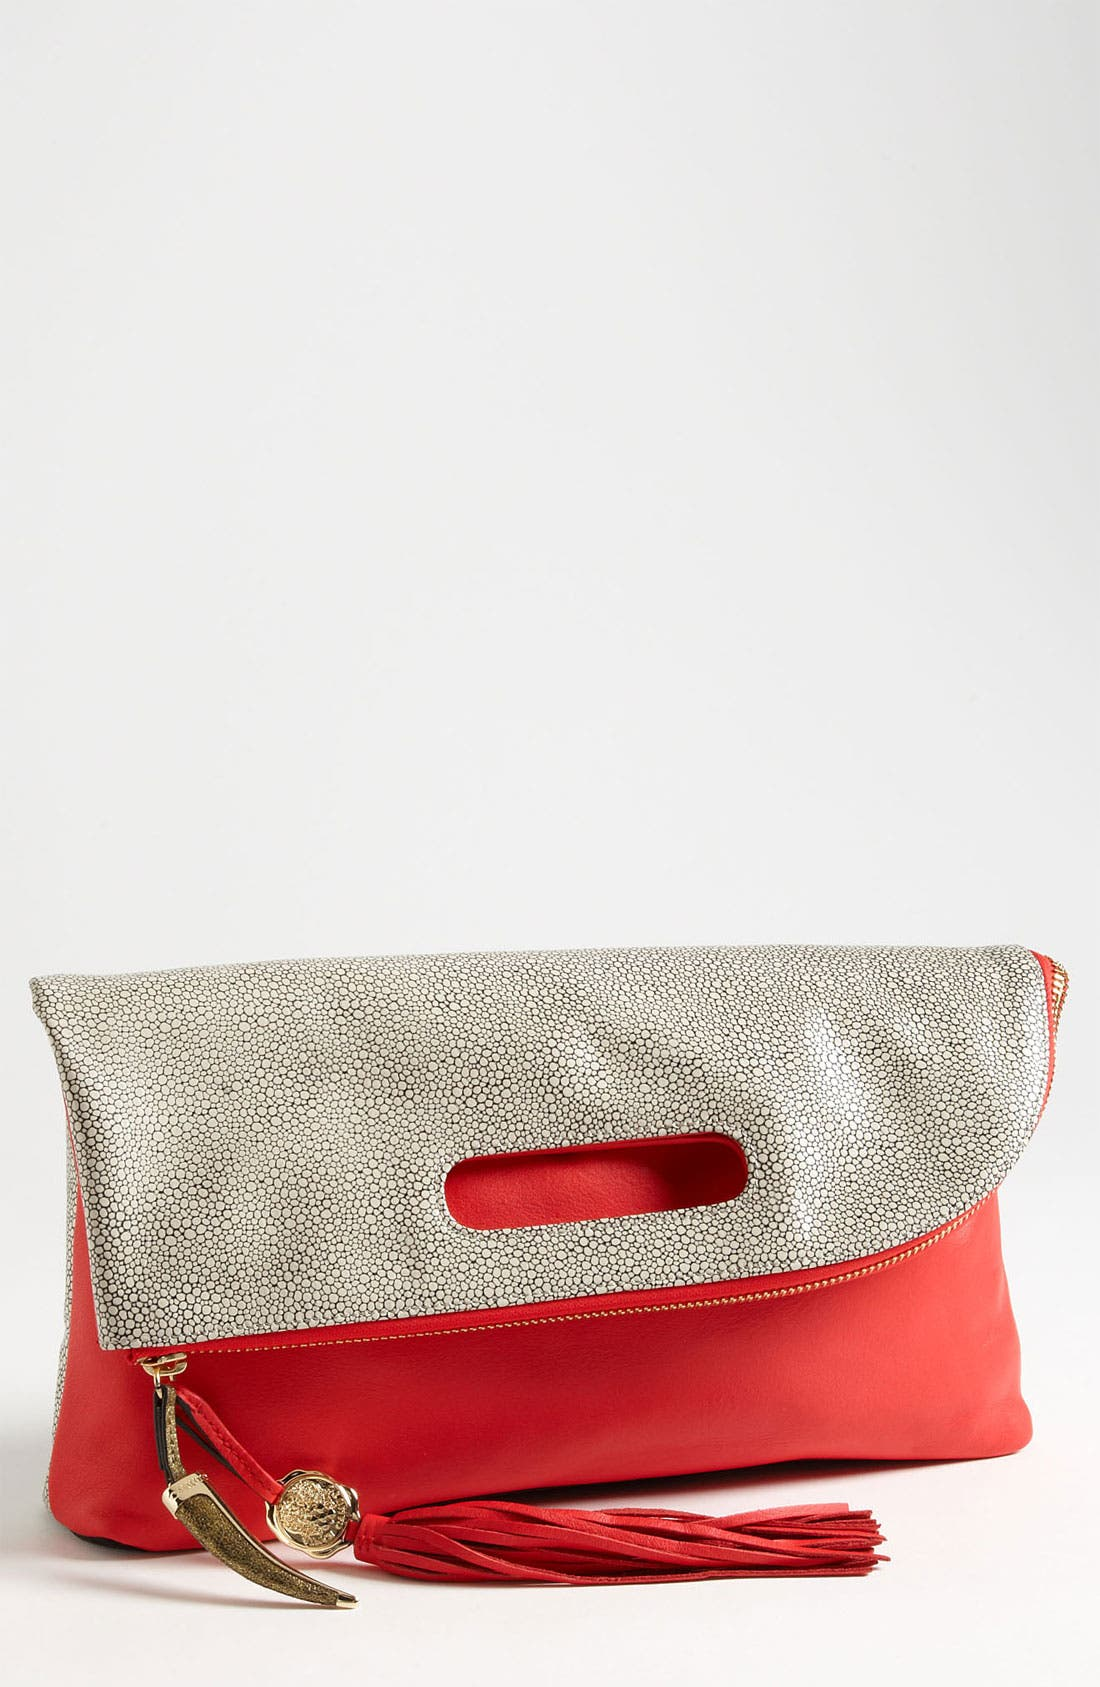 Main Image - Vince Camuto 'Juliann' Clutch